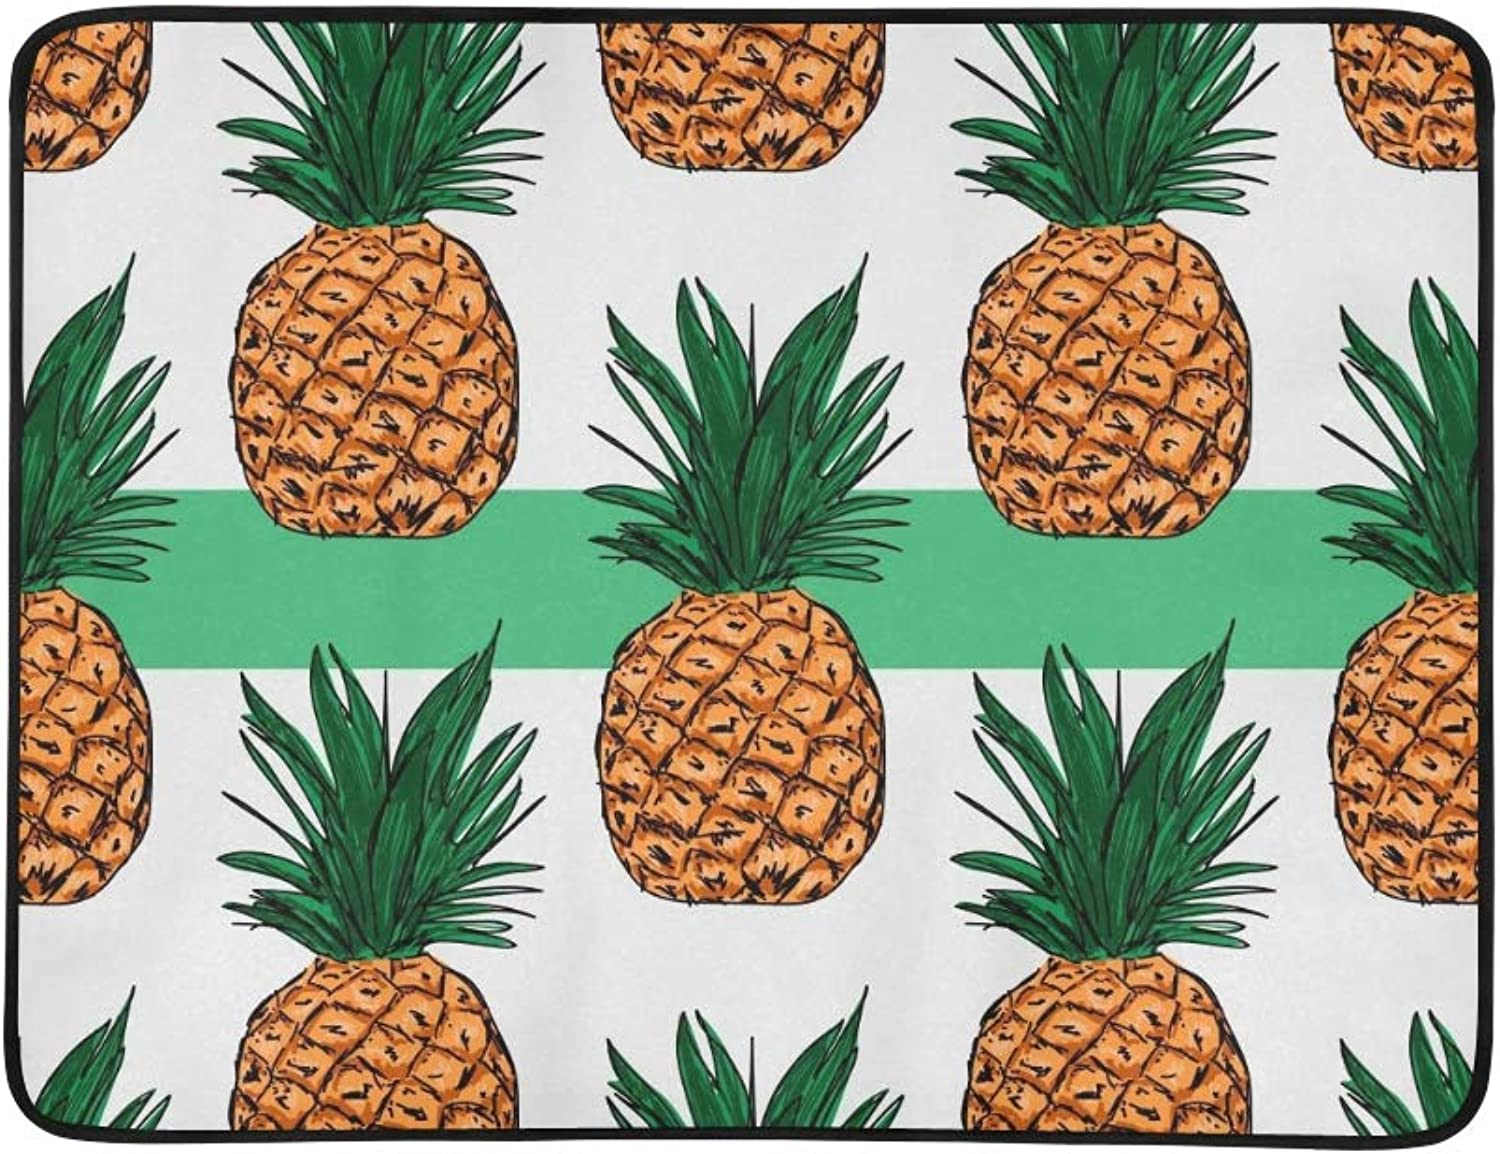 Pineapple On Bright Green color Portable and Foldable Blanket Mat 60x78 Inch Handy Mat for Camping Picnic Beach Indoor Outdoor Travel